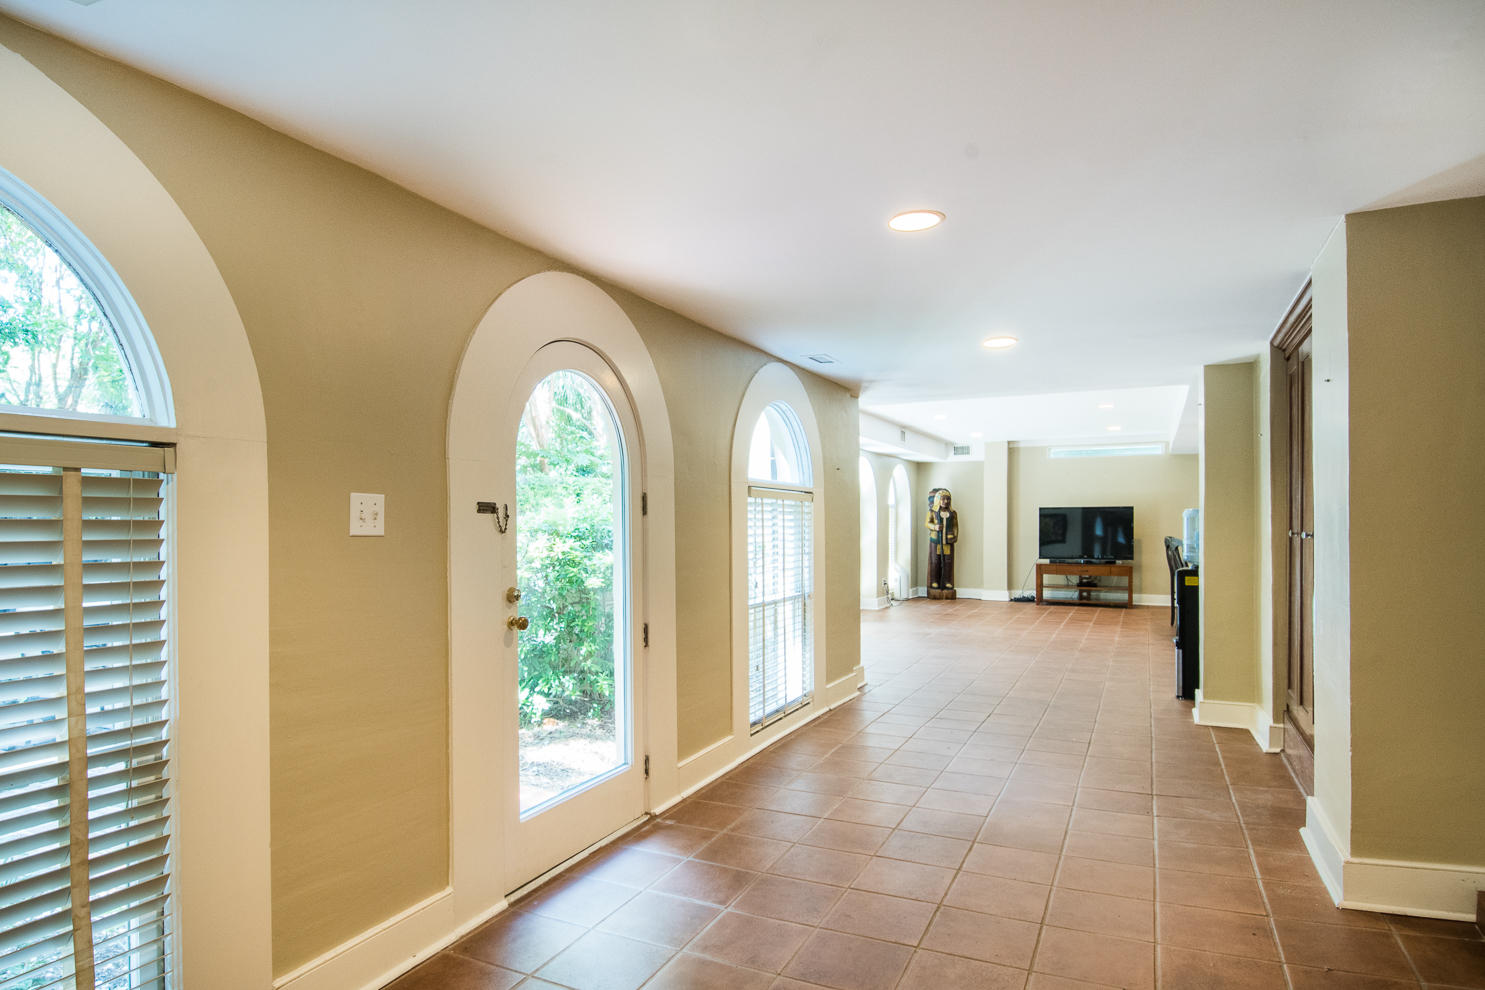 South of Broad Homes For Sale - 1 Prices, Charleston, SC - 46